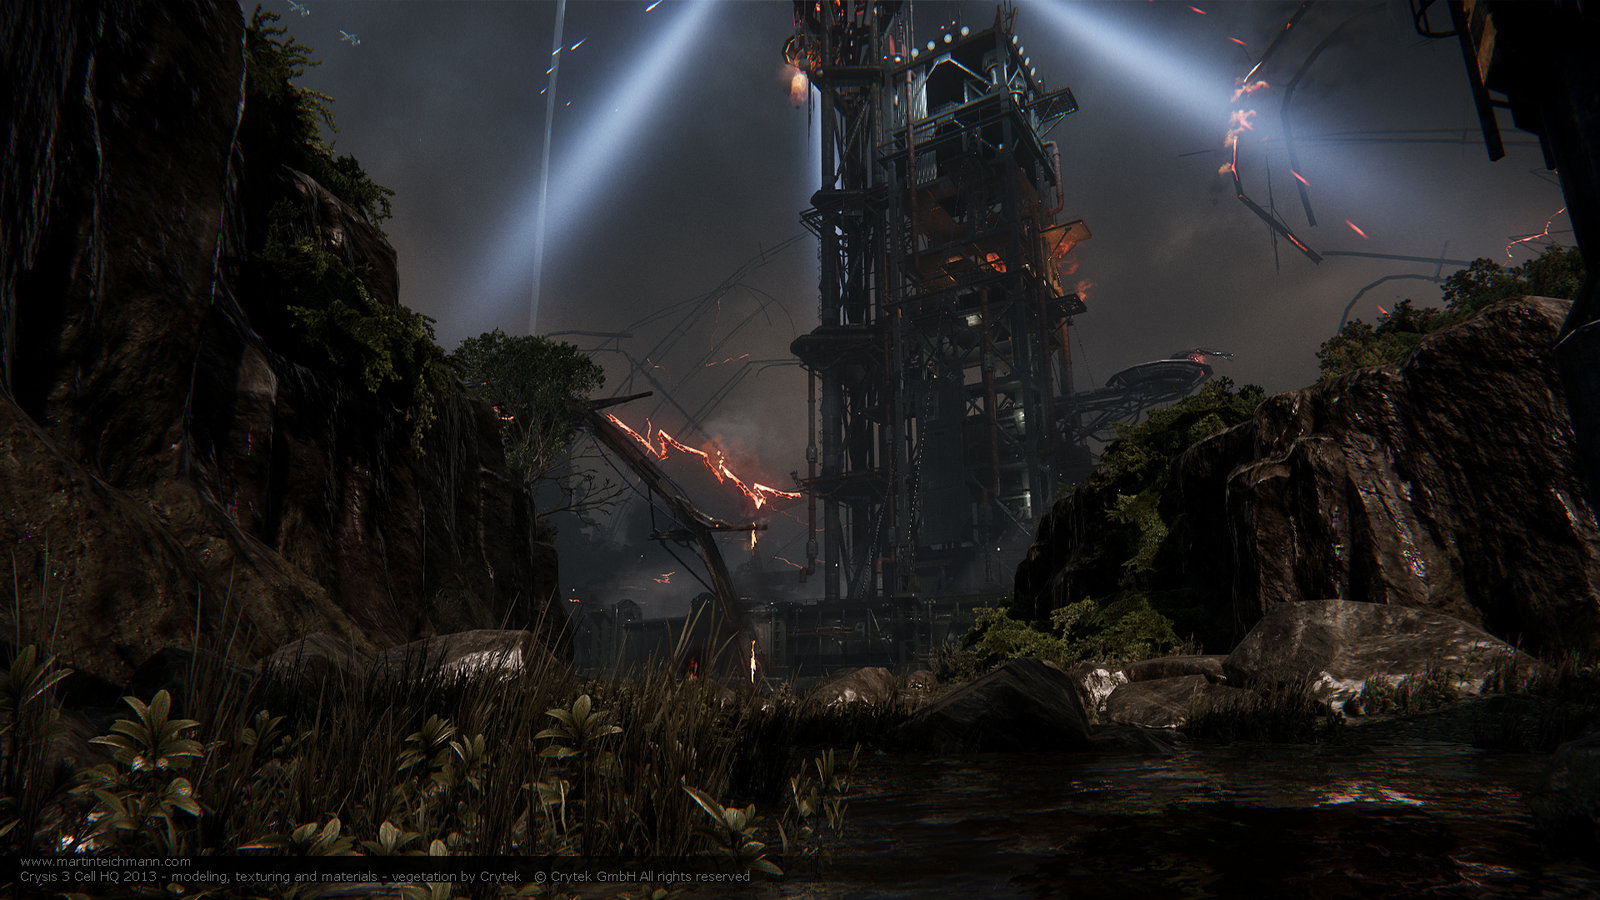 Crysis 3 Cell HQ - Red Star Rising Exterior 01